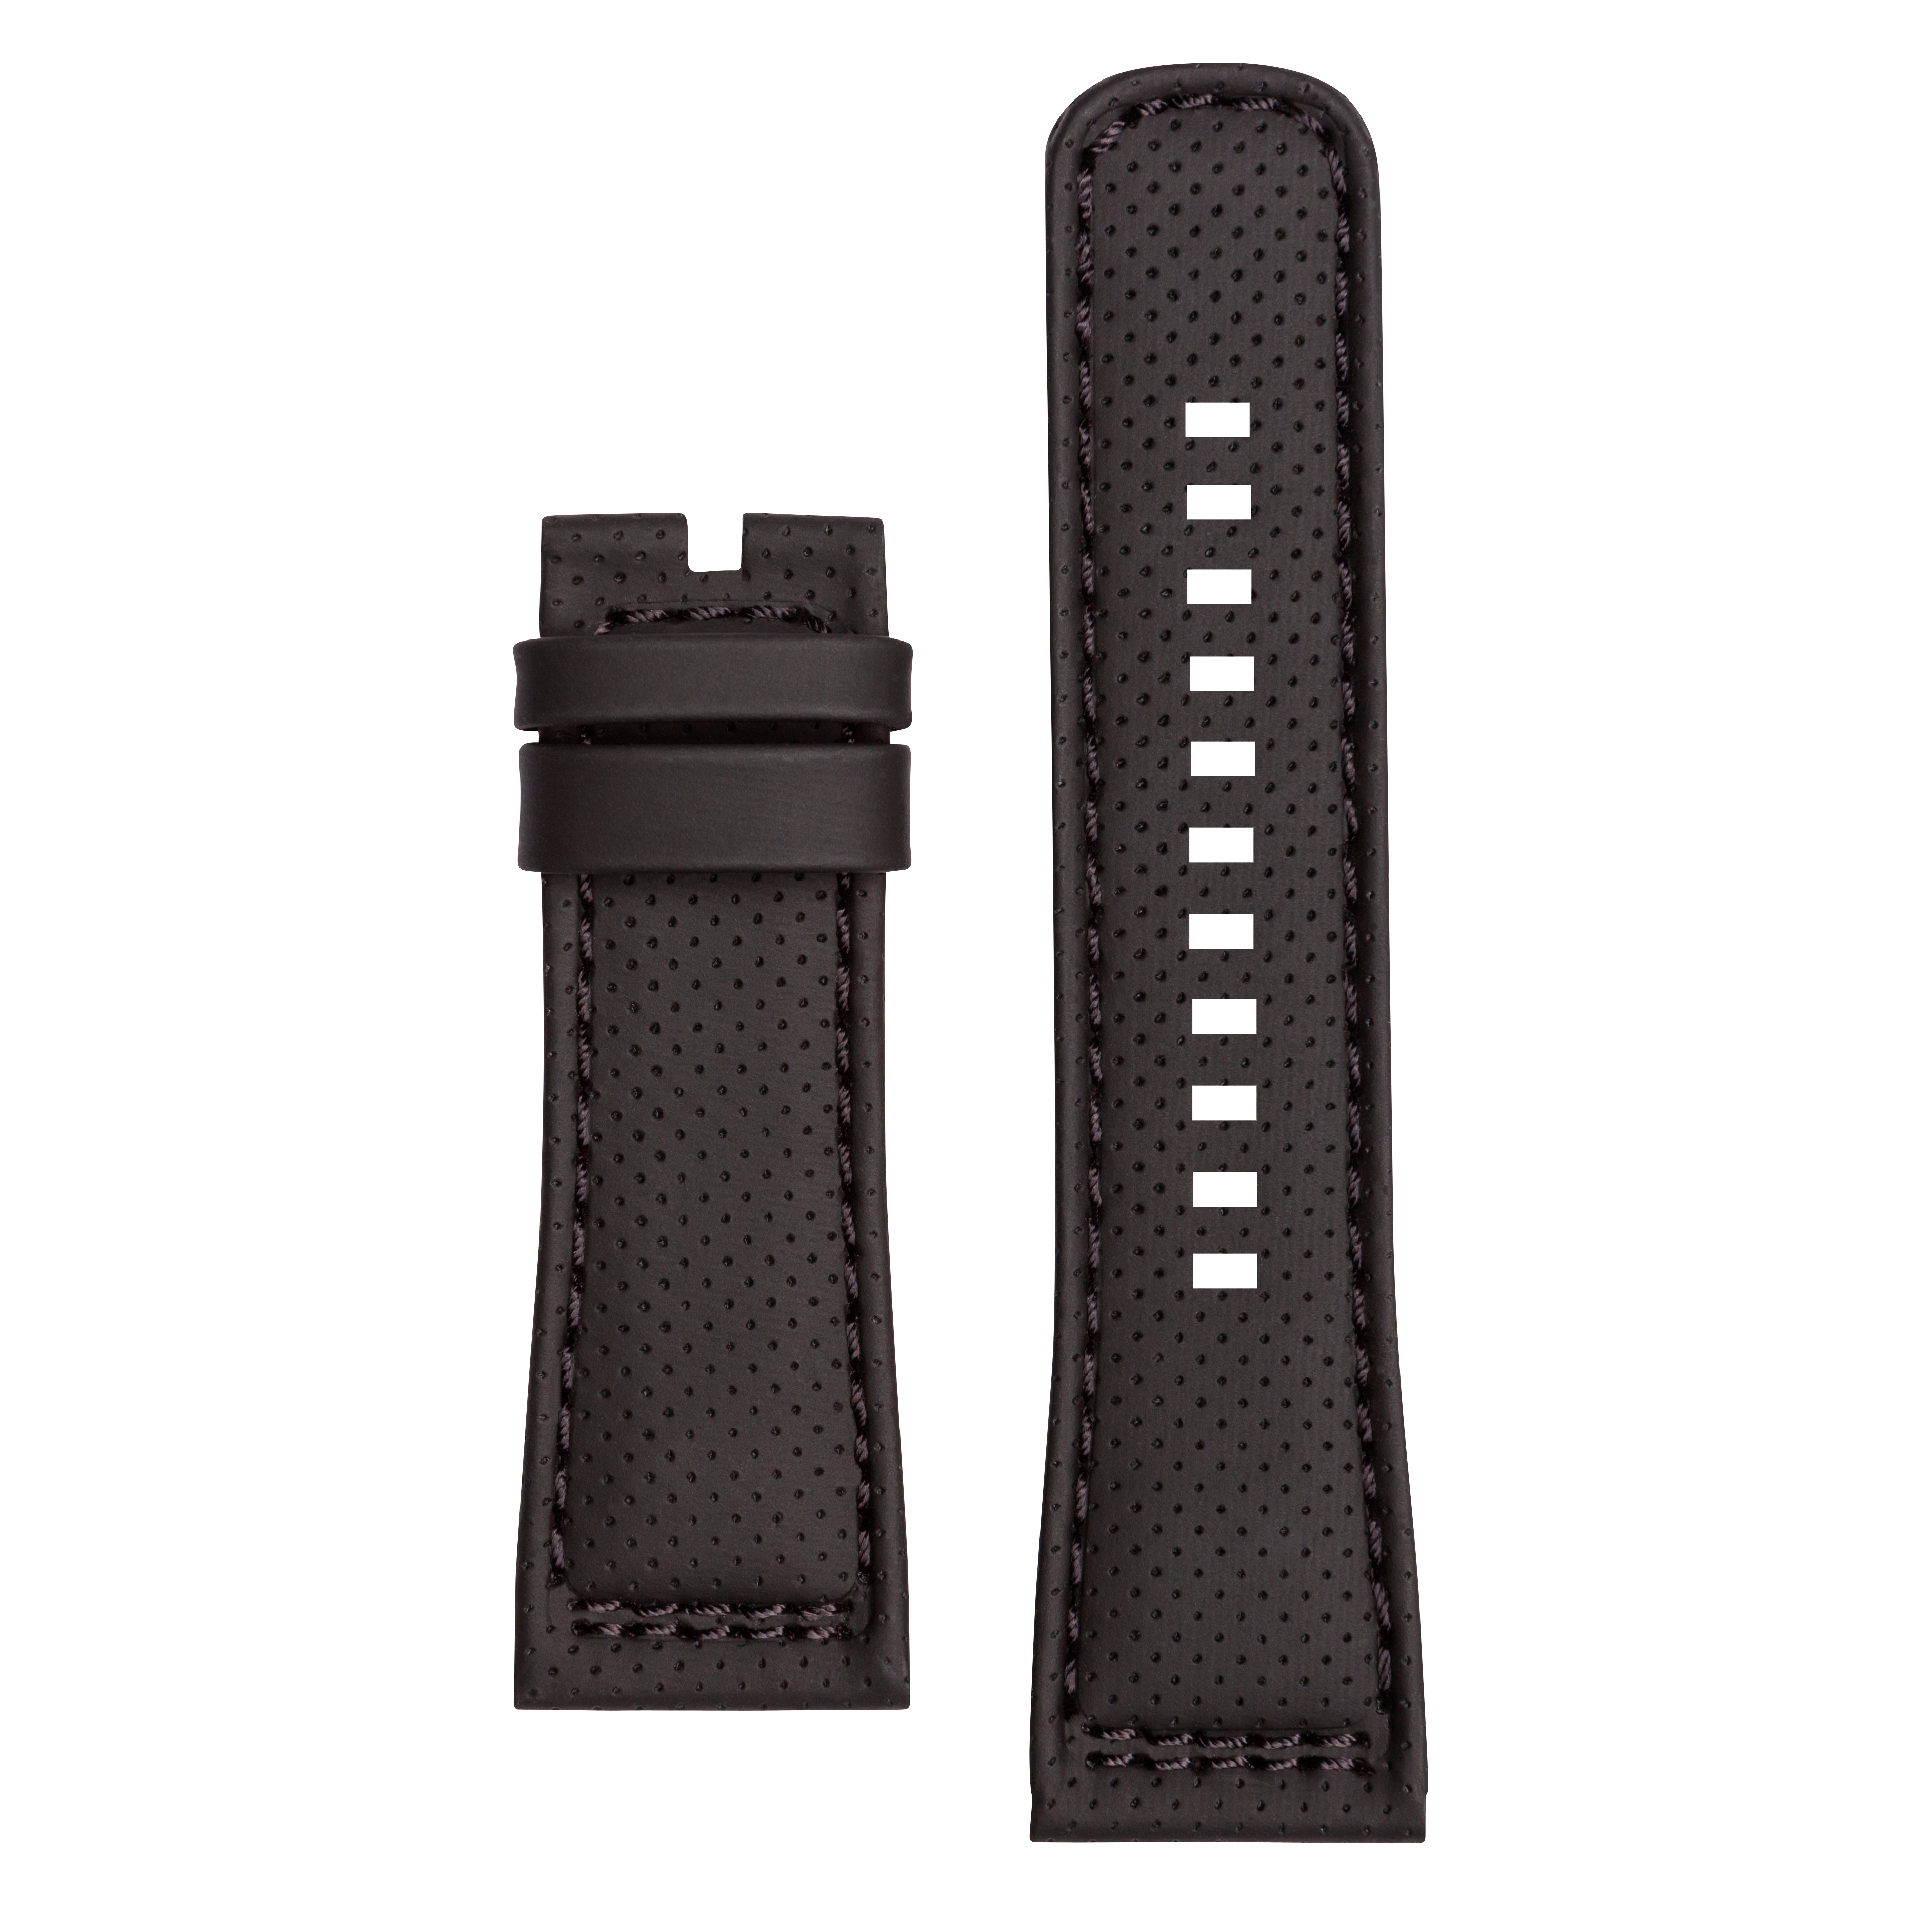 Leather strap XS black, perforated